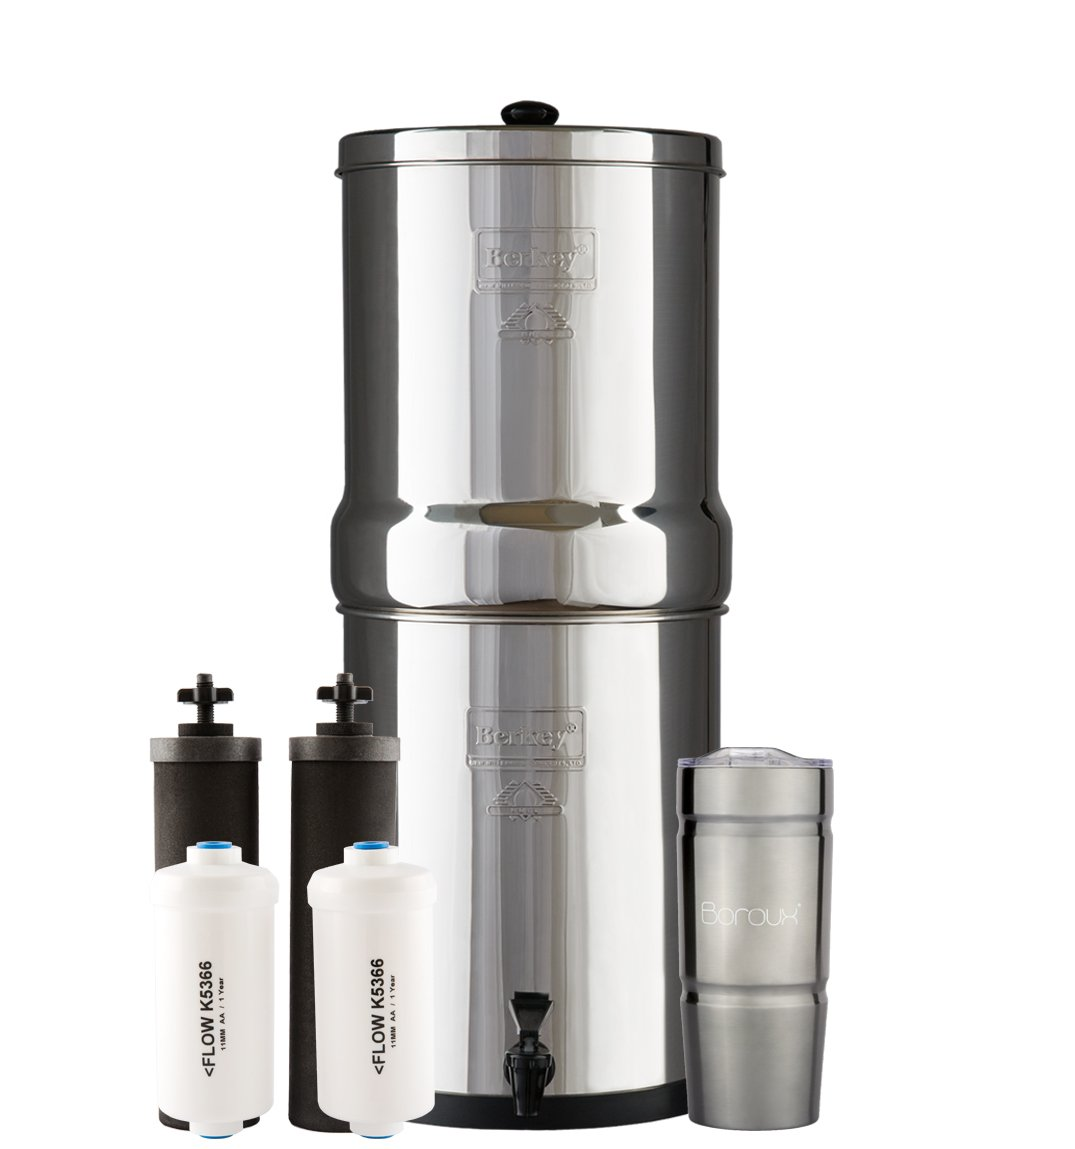 ROYAL Berkey Water Filter System with 2 Black Purifier Filters (3 Gallons) Bundled with 1 set of Fluoride (PF2) Filters and 1 Boroux Double Walled 20 oz Stainless Steel Tumbler Cup